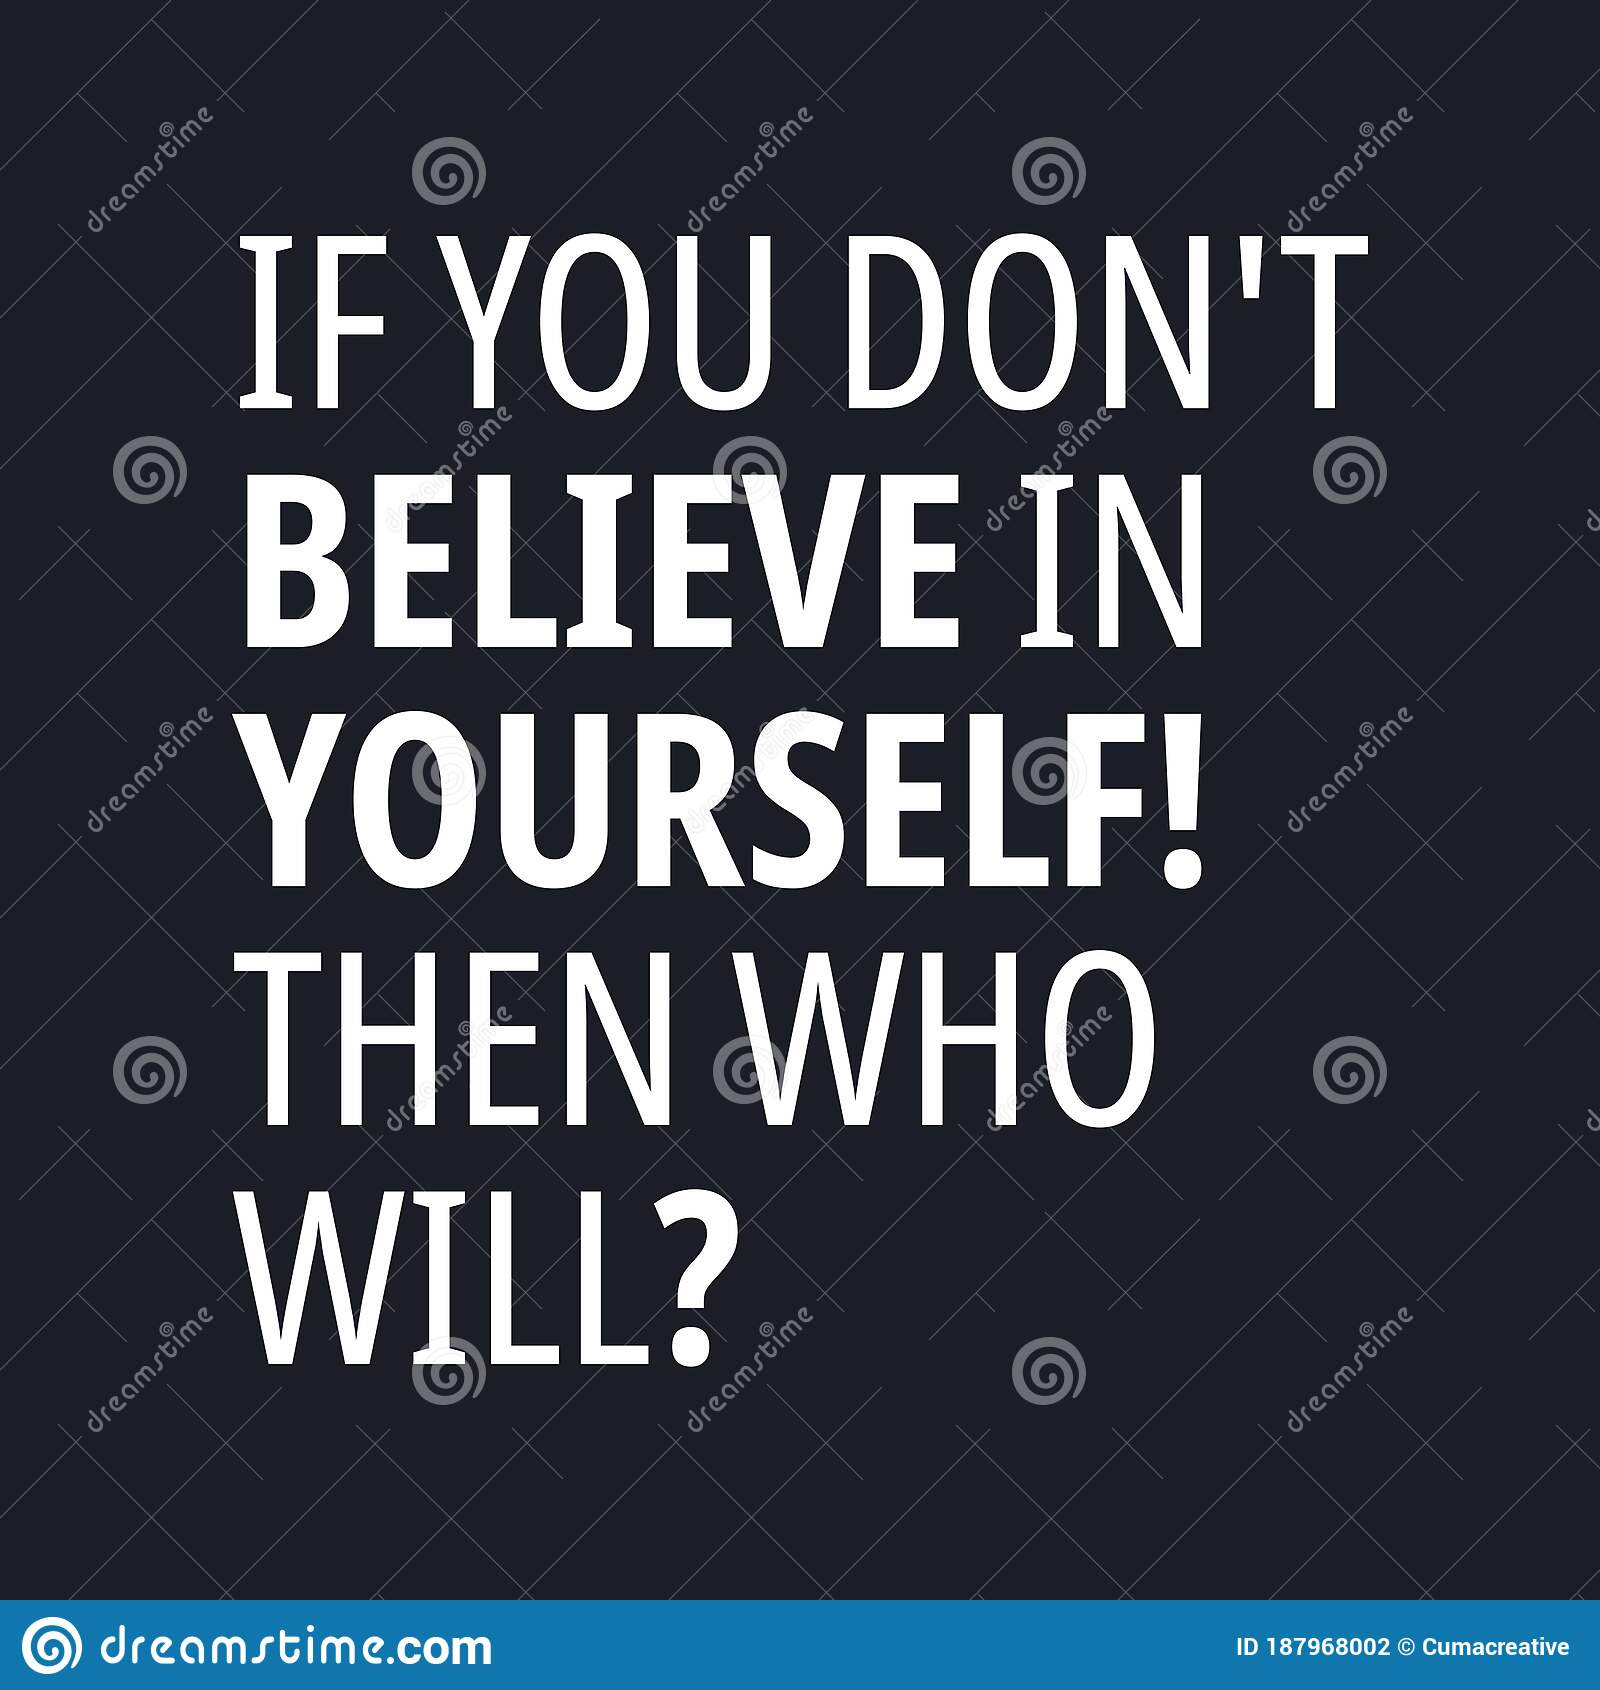 If You Don T Believe In Yourself Then Who Will Motivational And Inspirational Quotes Stock Vector Illustration Of Philosophy Message 187968002